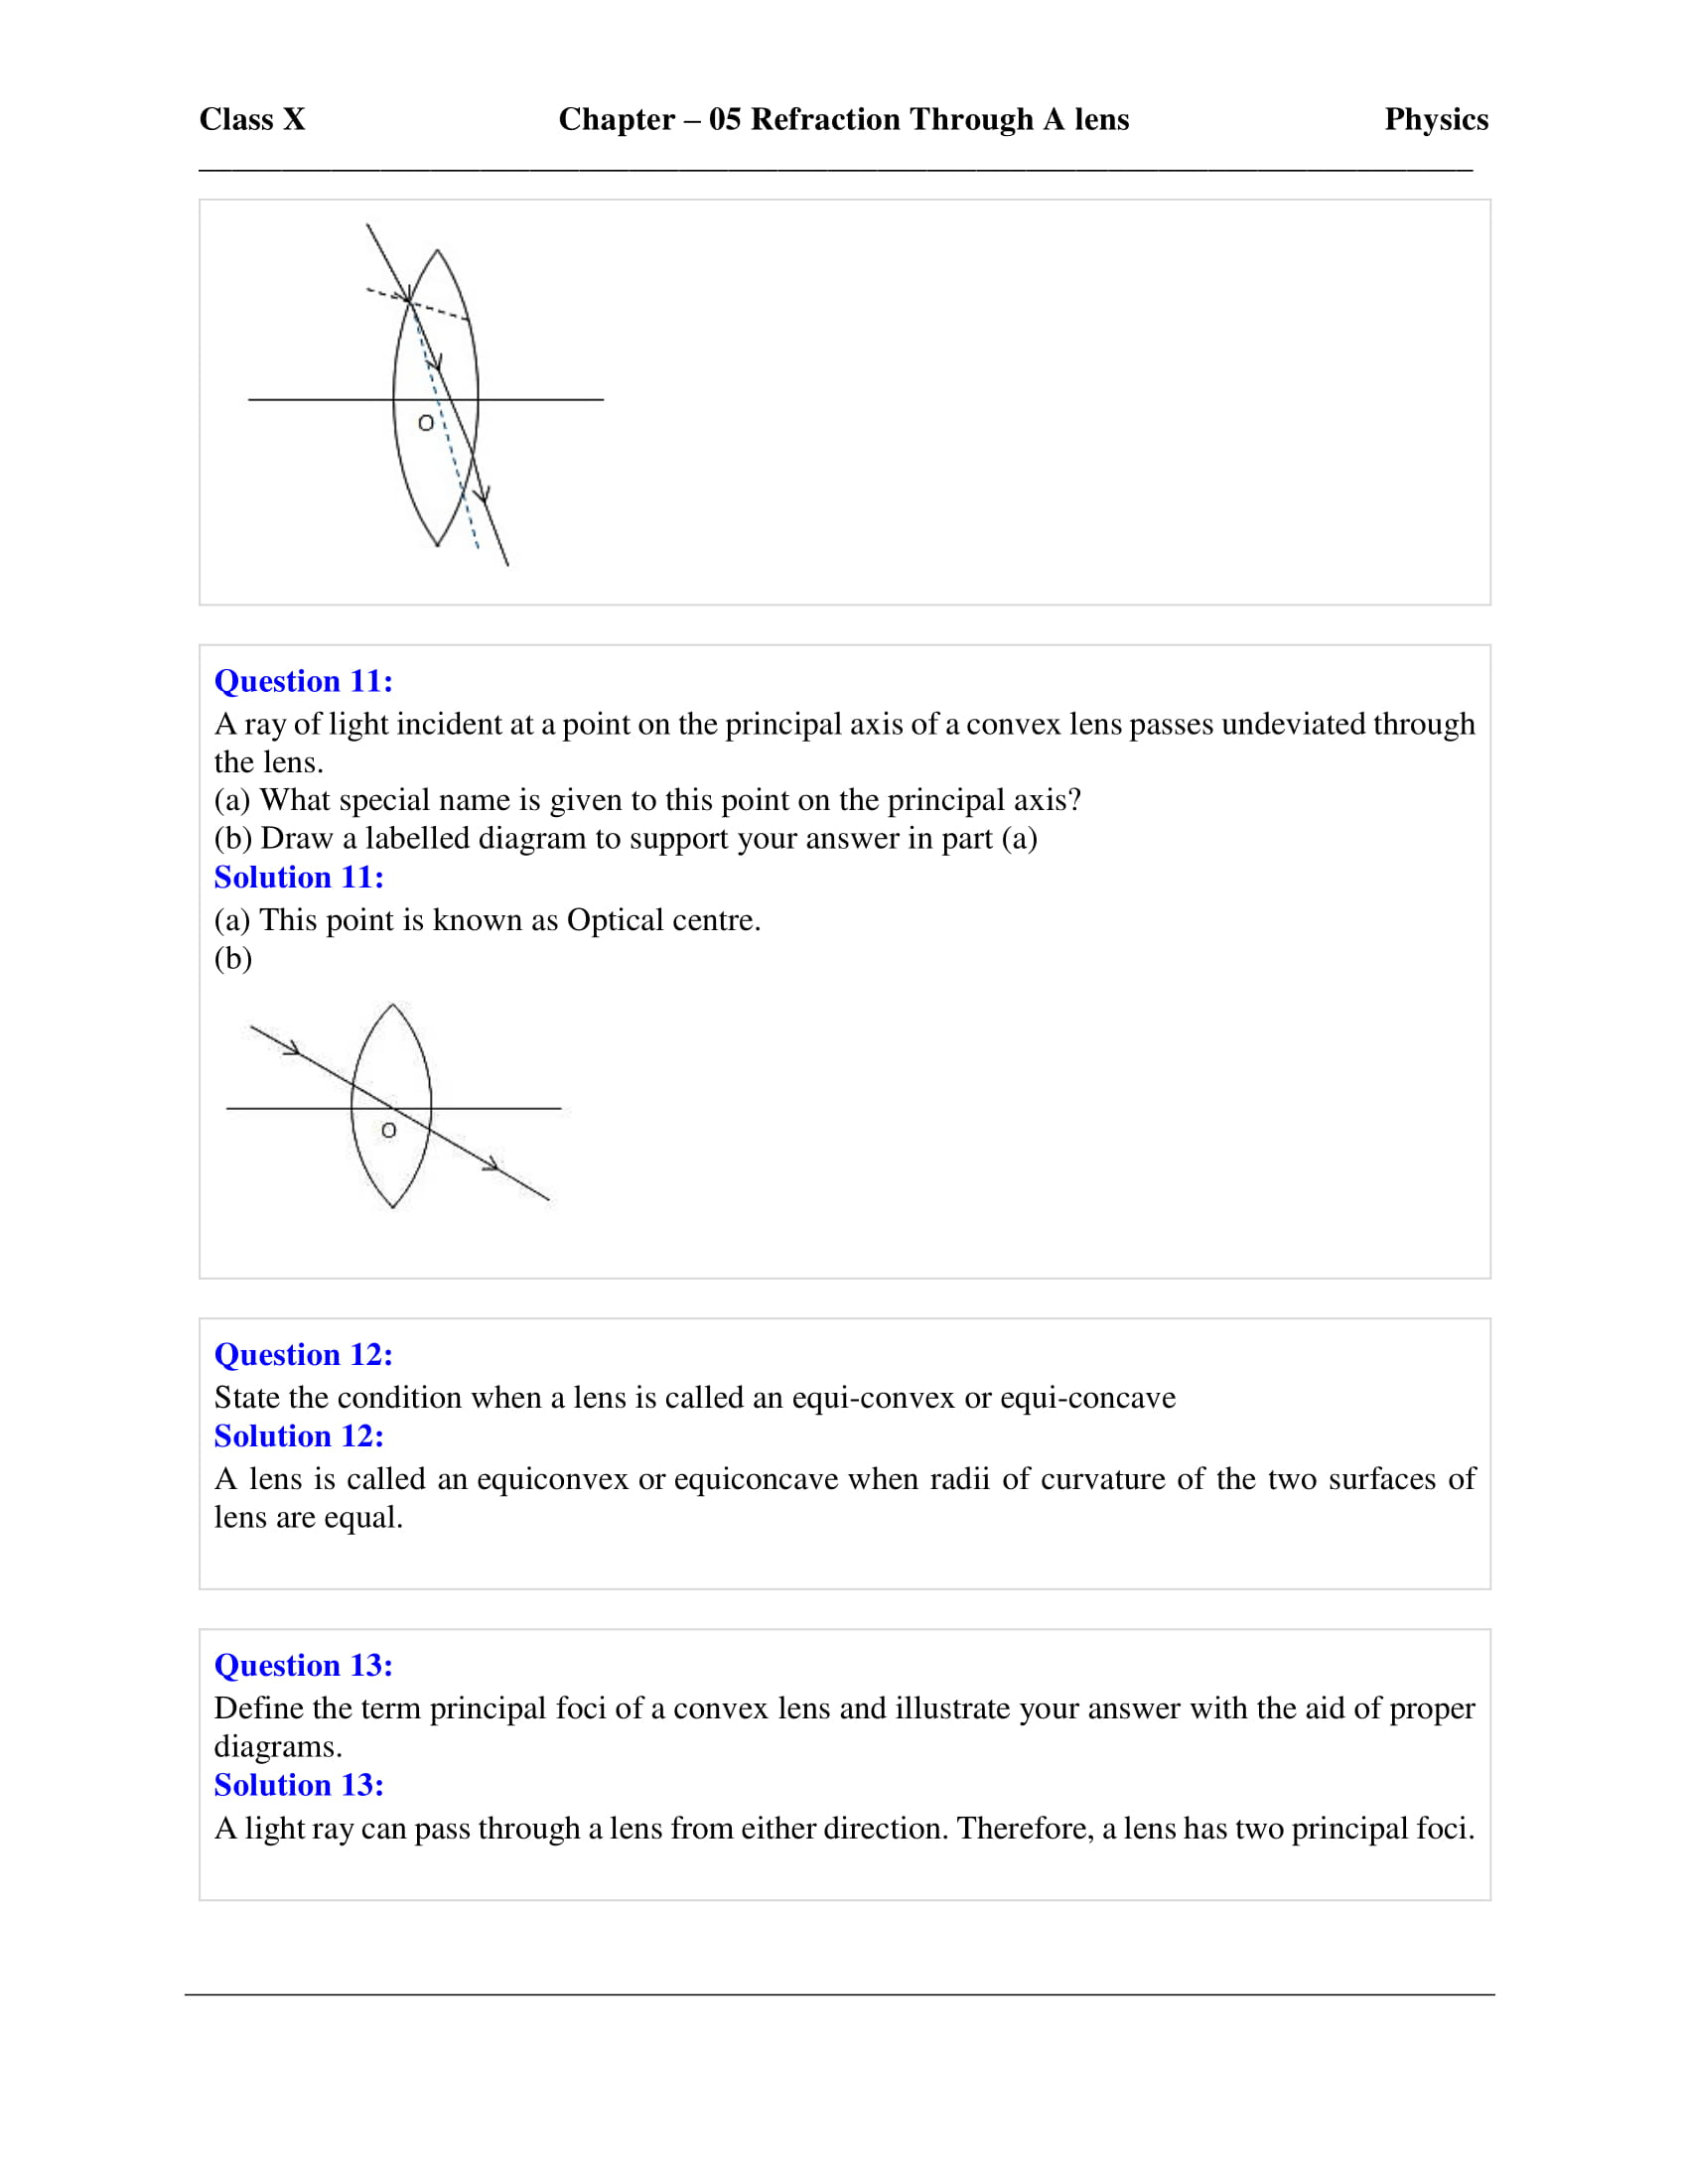 icse-selina-physics-solutions-class-10-chapter-5-refraction-through-a-lens-04